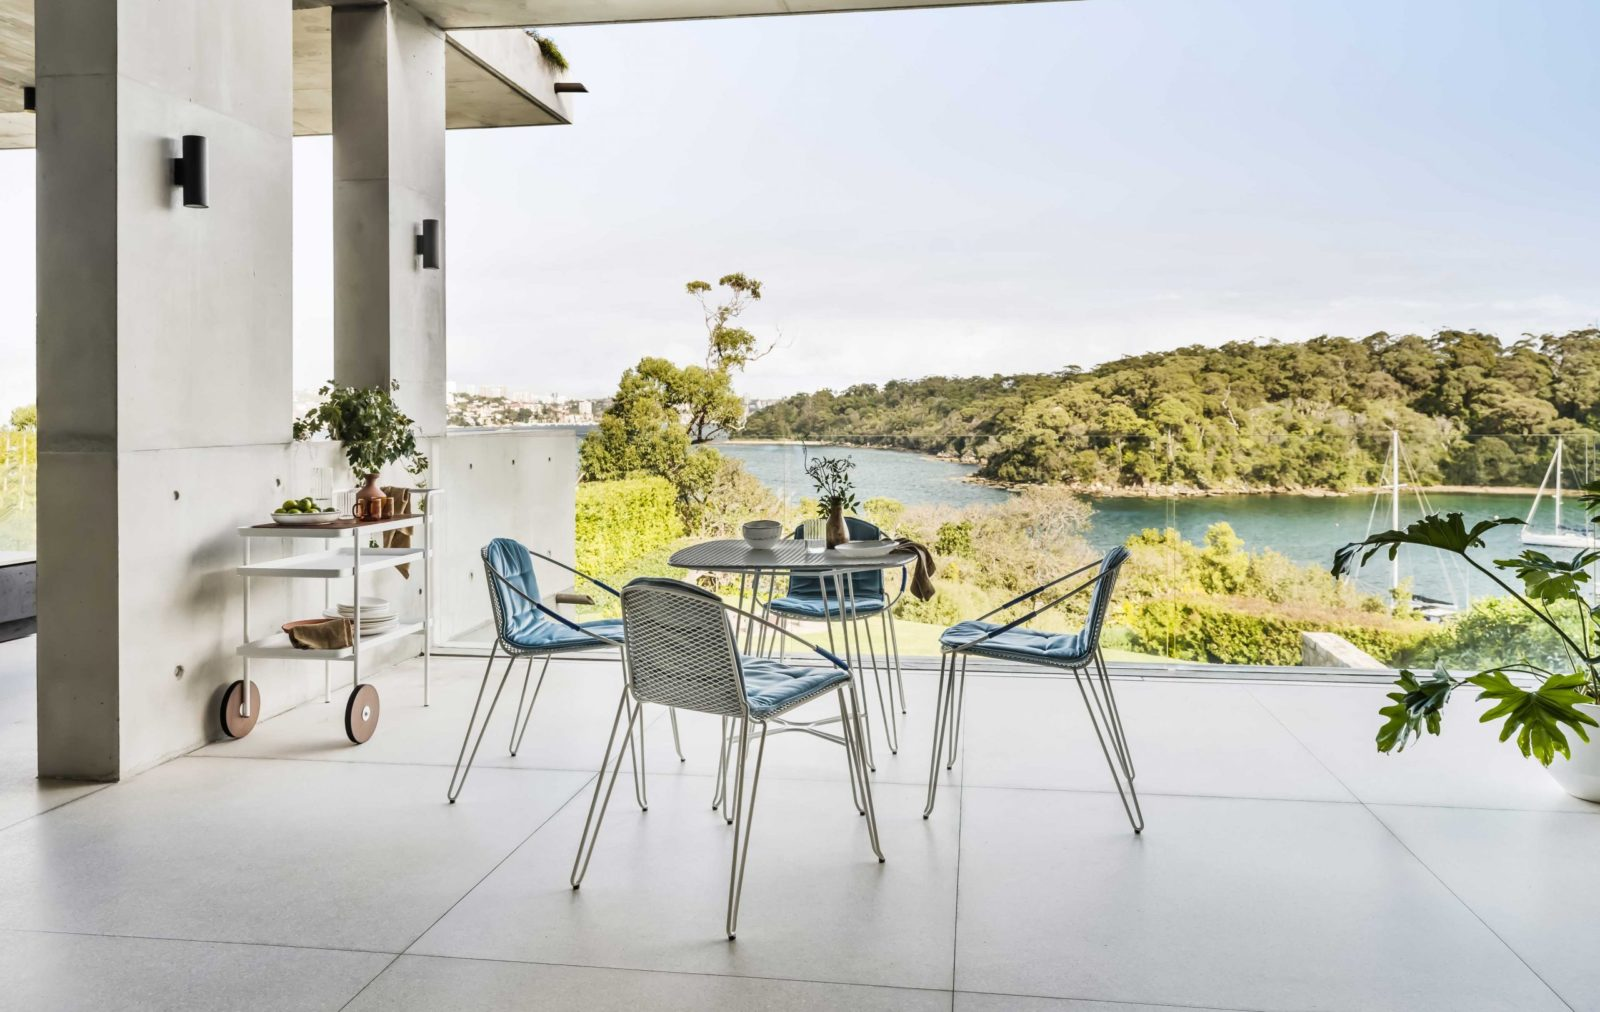 the Volley Chair - a modern outdoor dining chair with a distinct mid-century modern vibe designed by Adam Goodrum.